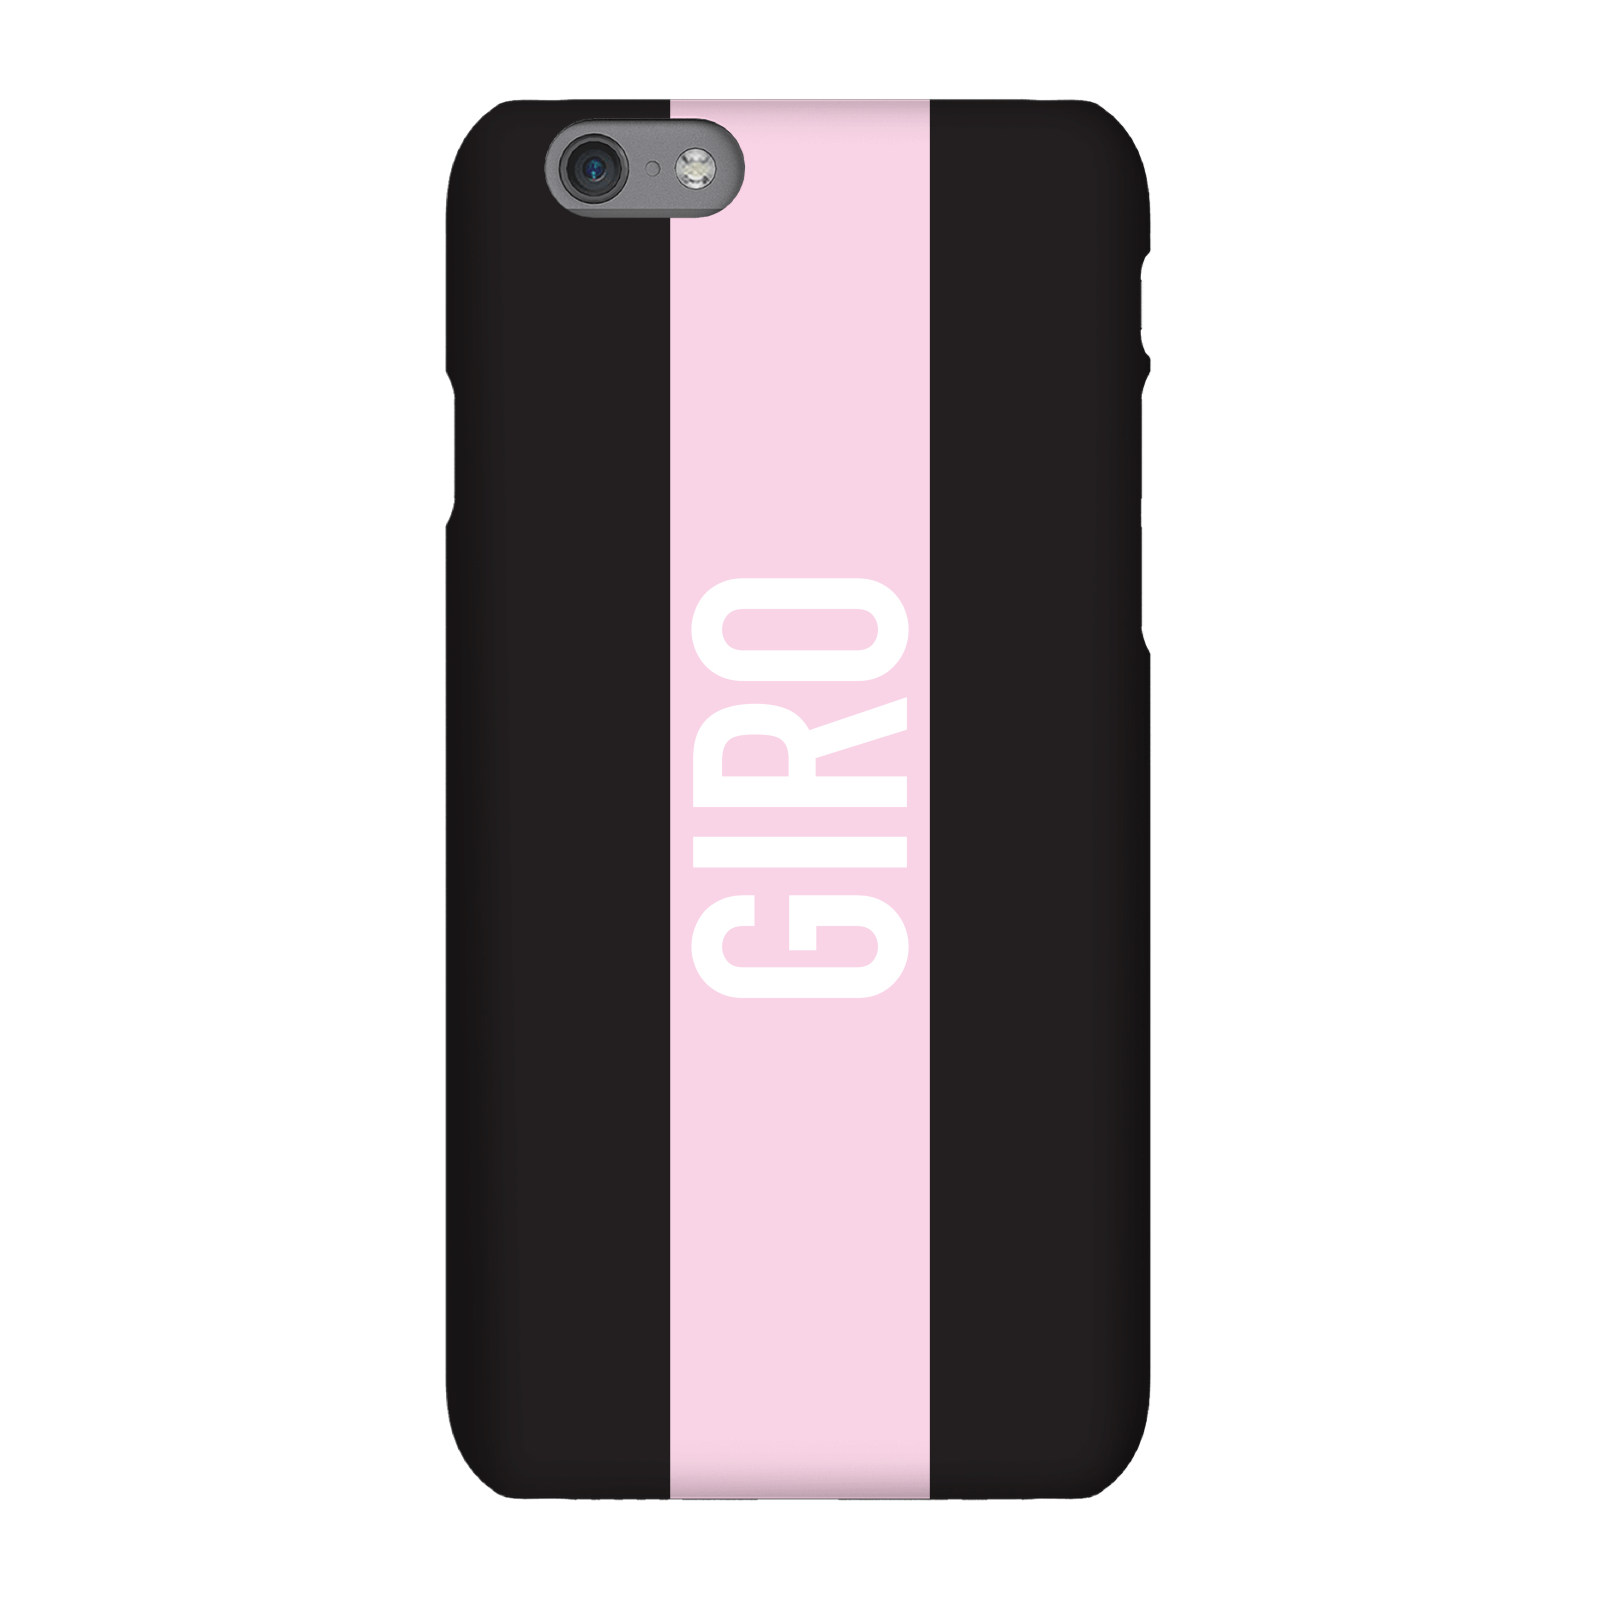 Giro Phone Case For Iphone And Android - Iphone X - Tough Case - Matte